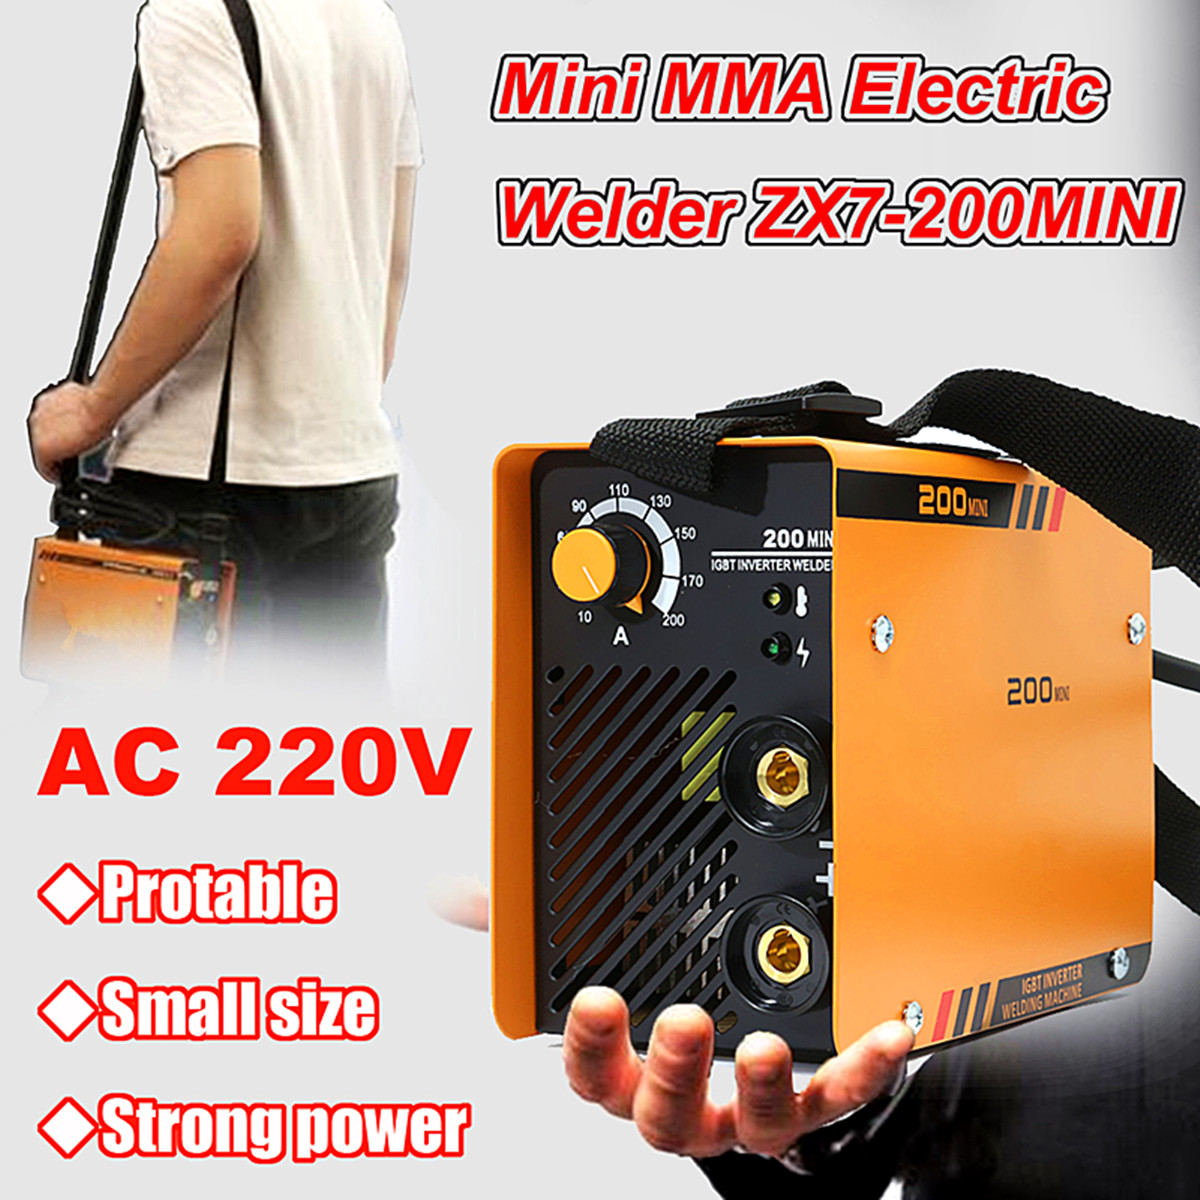 New ZX7-200MINI 5.5KW Handheld Mini MMA Electric 220V 10-200A Inverter ARC Welding Machine Tool mos tube 220v welding inverter driven plate you have triggered arc zx7 tig200